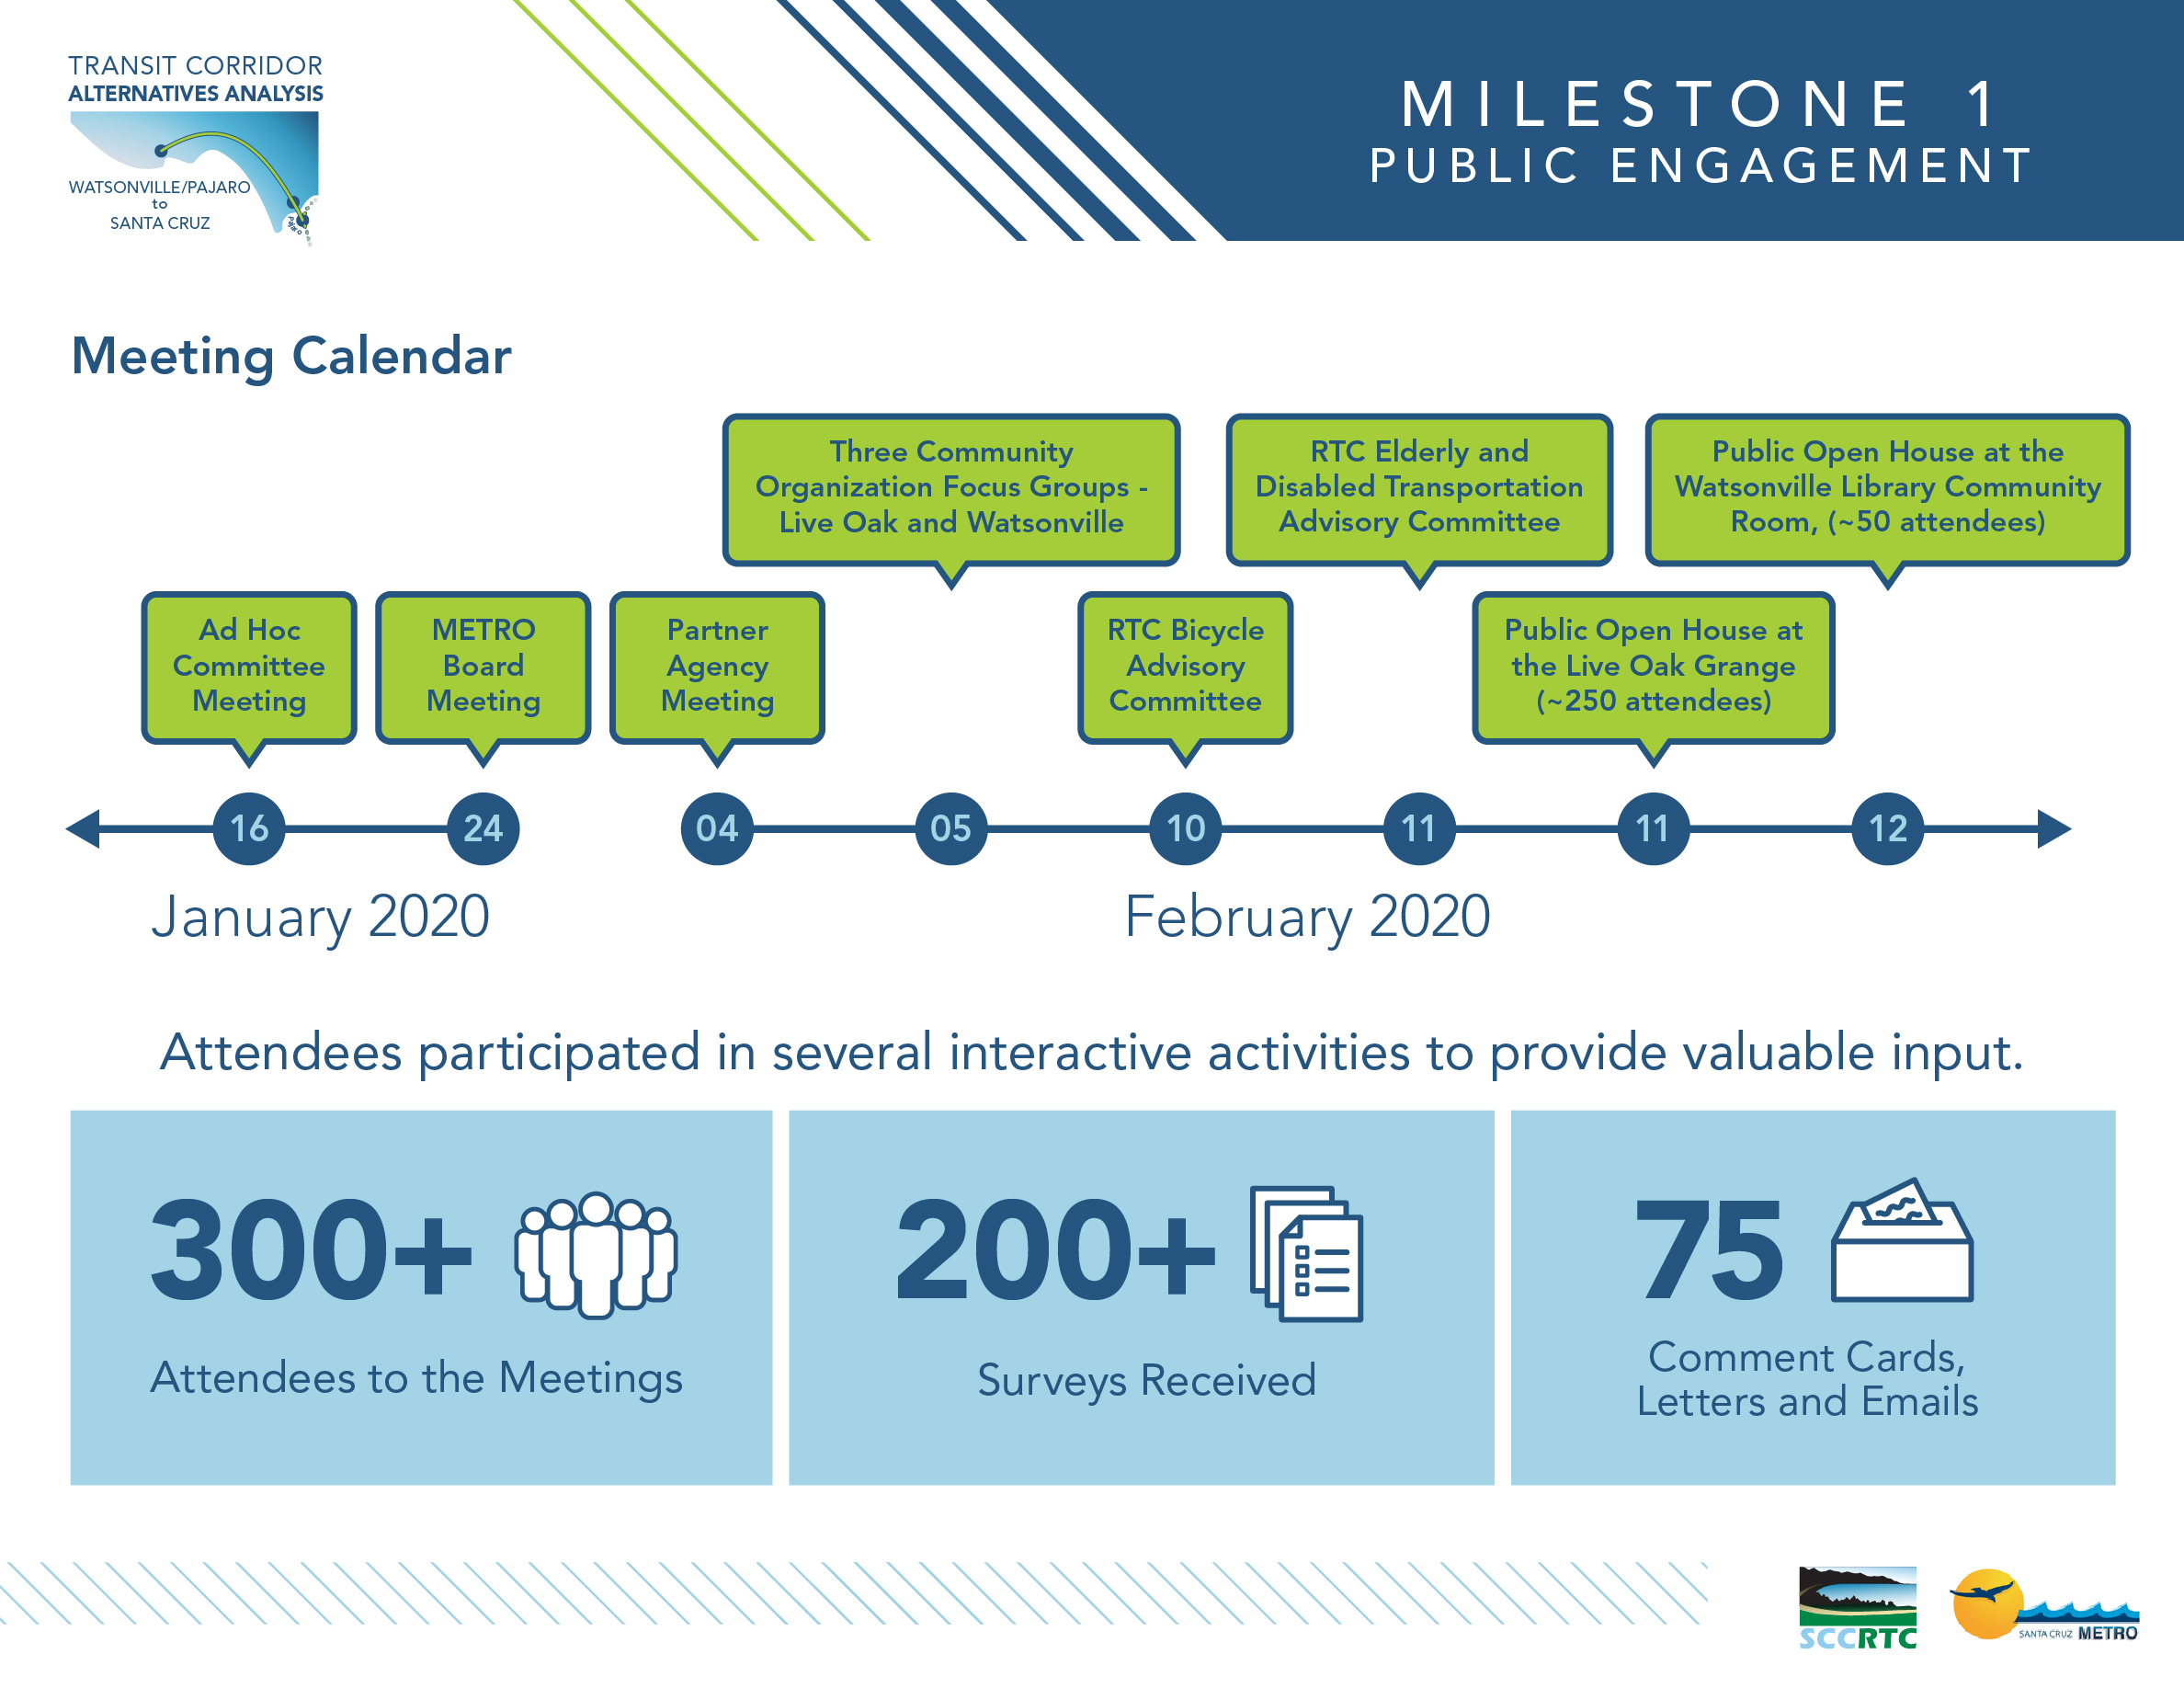 Board 4: Milestone 1 Public Engagement Meeting Calendar: January 2020: Ad Hoc Committee Meeting / Metro Board Meeting February 2020: Partner Agency Meeting / Three Community Organization Focus Groups in Live Oak and Watsonville / RTC Bicycle Advocacy Committee Meeting / RTC Elderly and Disabled Transportation Advisory Committee / Public Open Houses at Live Oak Grange and Watsonville Library Attendees participated in several interactive activities to provide valuable input. 300+ attendees to the meetings 200+ Surveys received 75 Comment cards, Letters and Emails